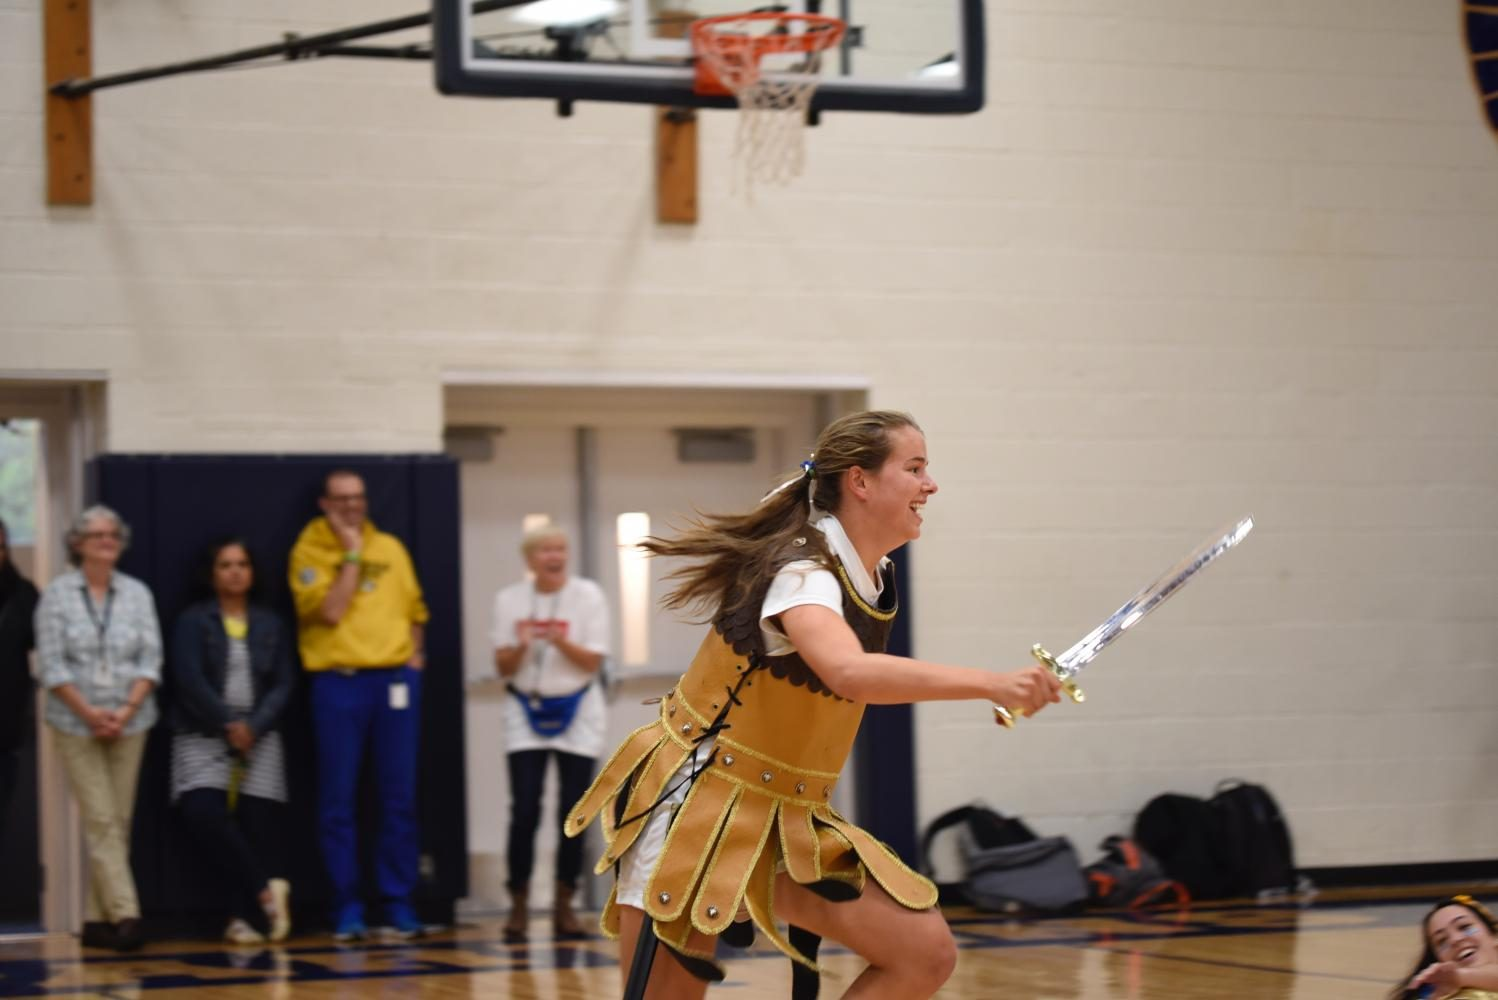 Senior and Spartan Kelly Fiedler runs in a skit performed by other students.